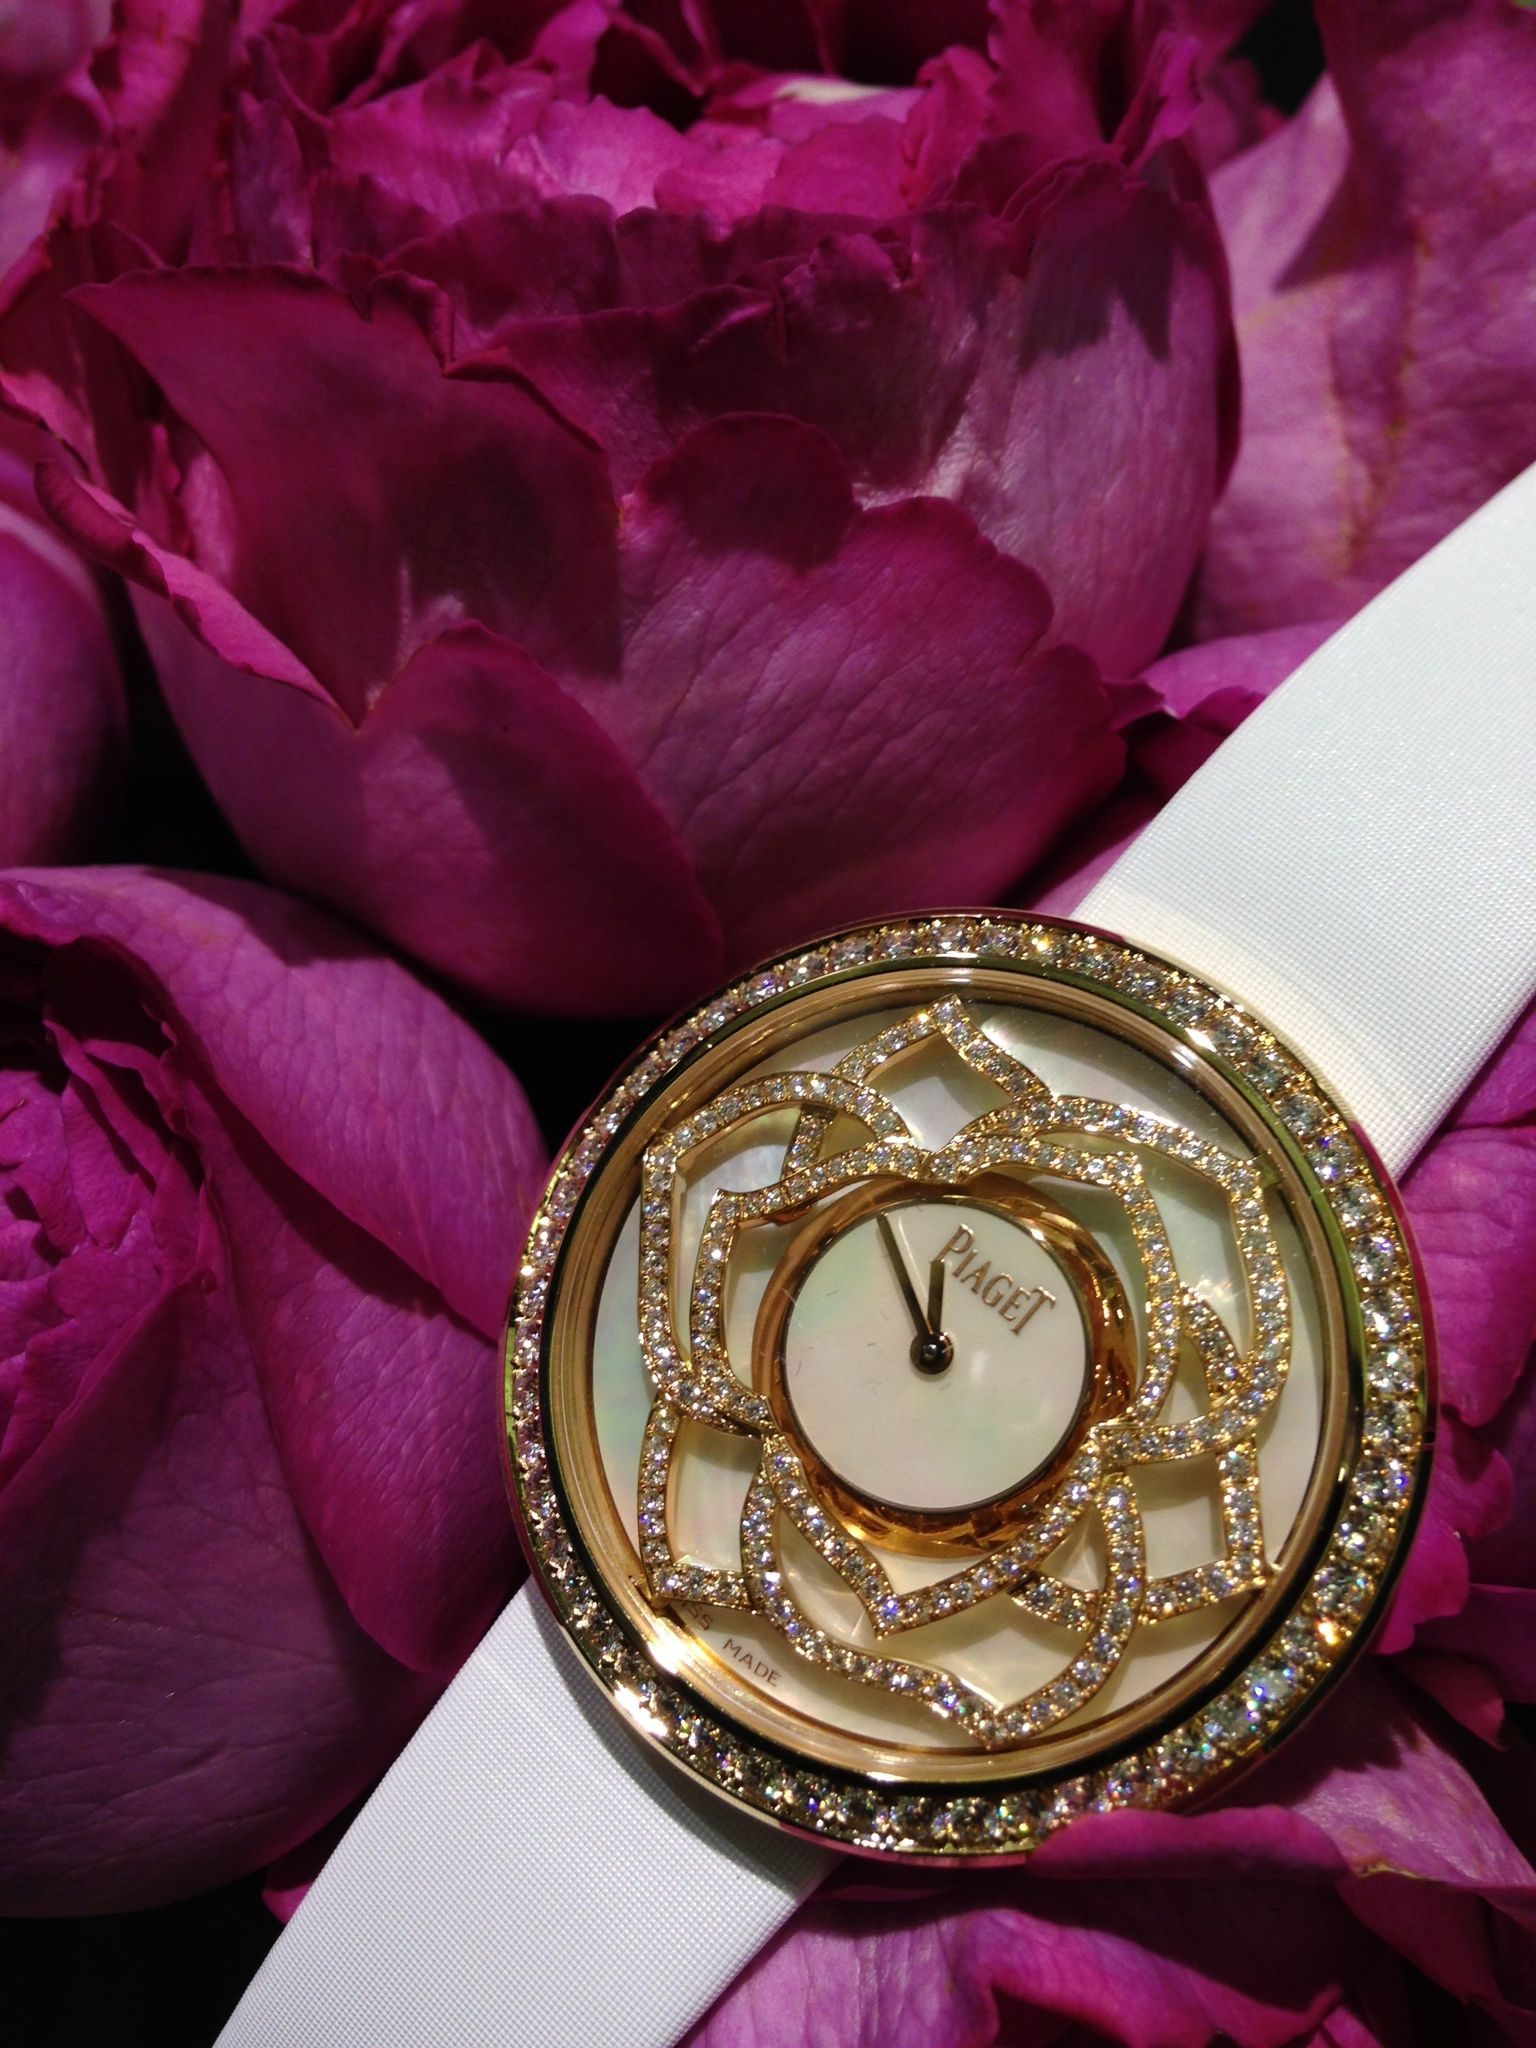 Piaget Rose Day sur Pinterest